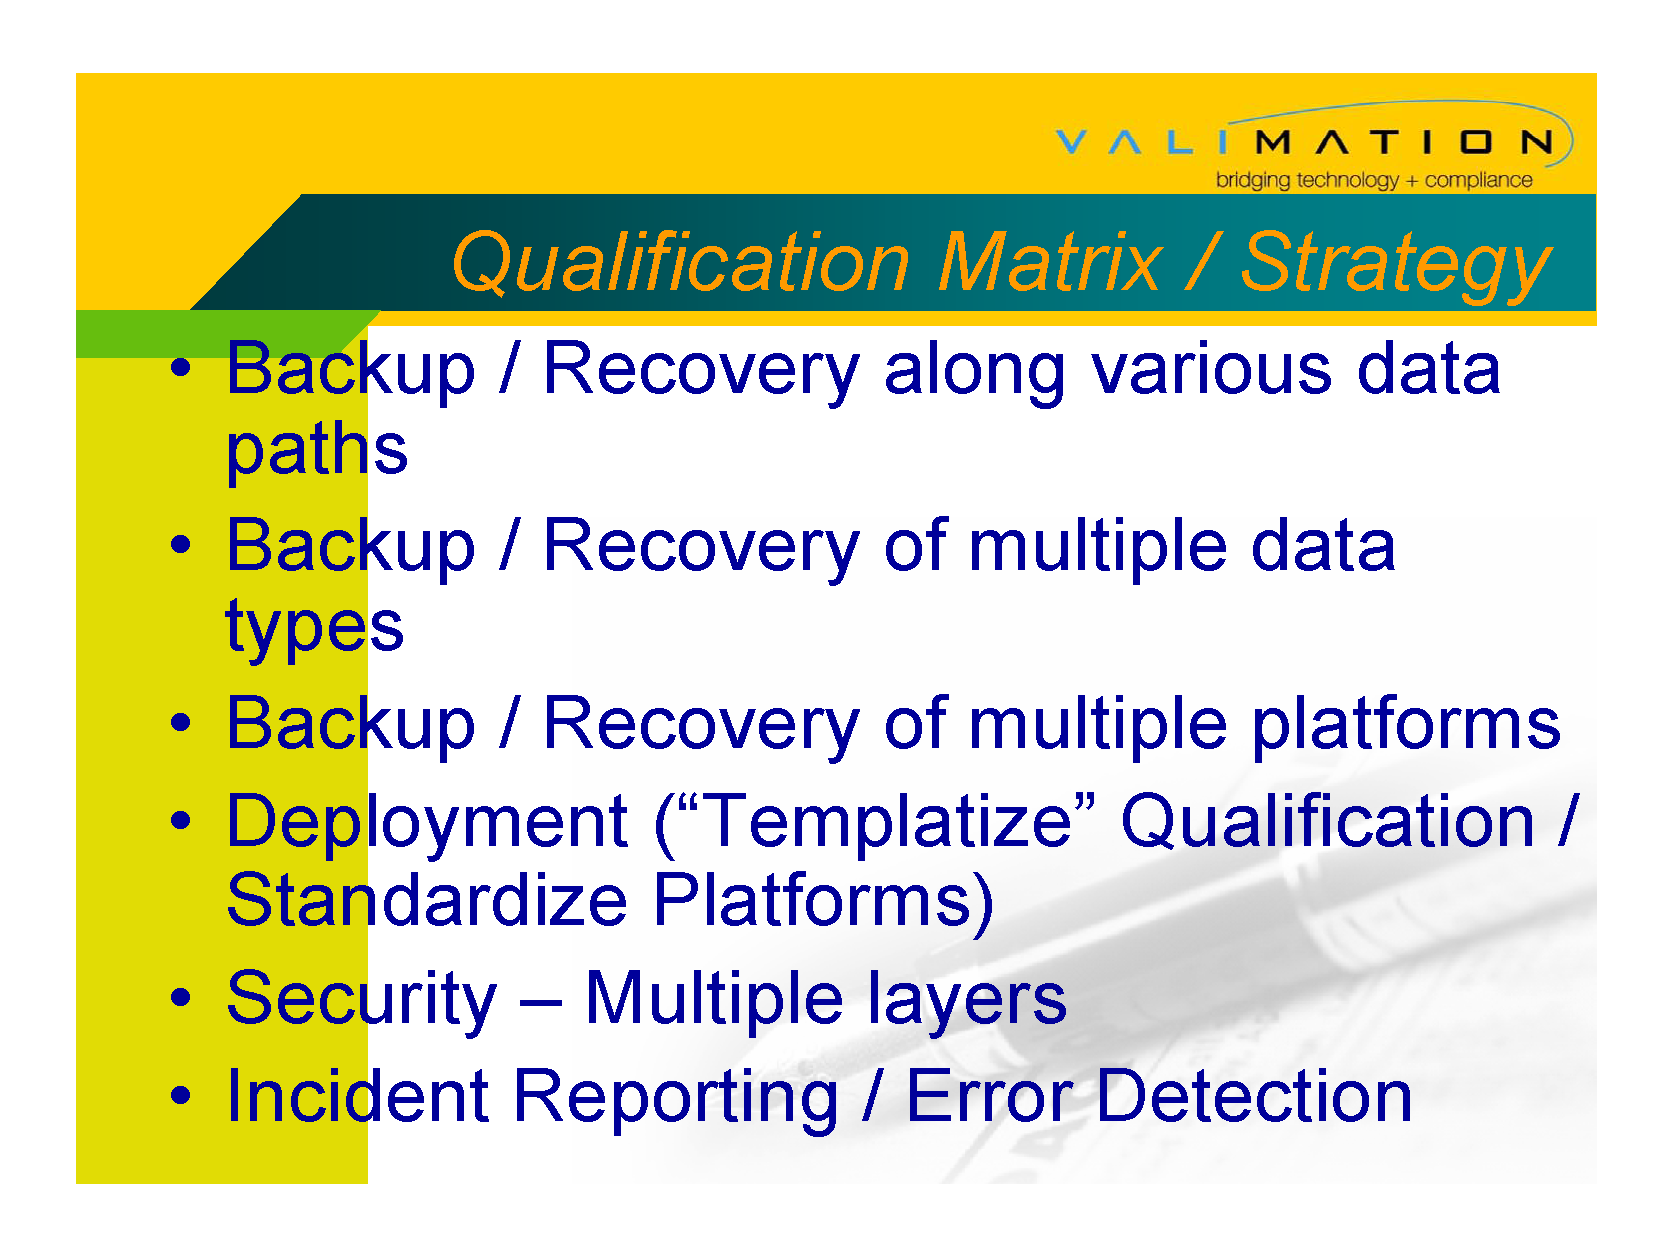 Network Qualification - Accretive Model By ValiMation_Page_38.png